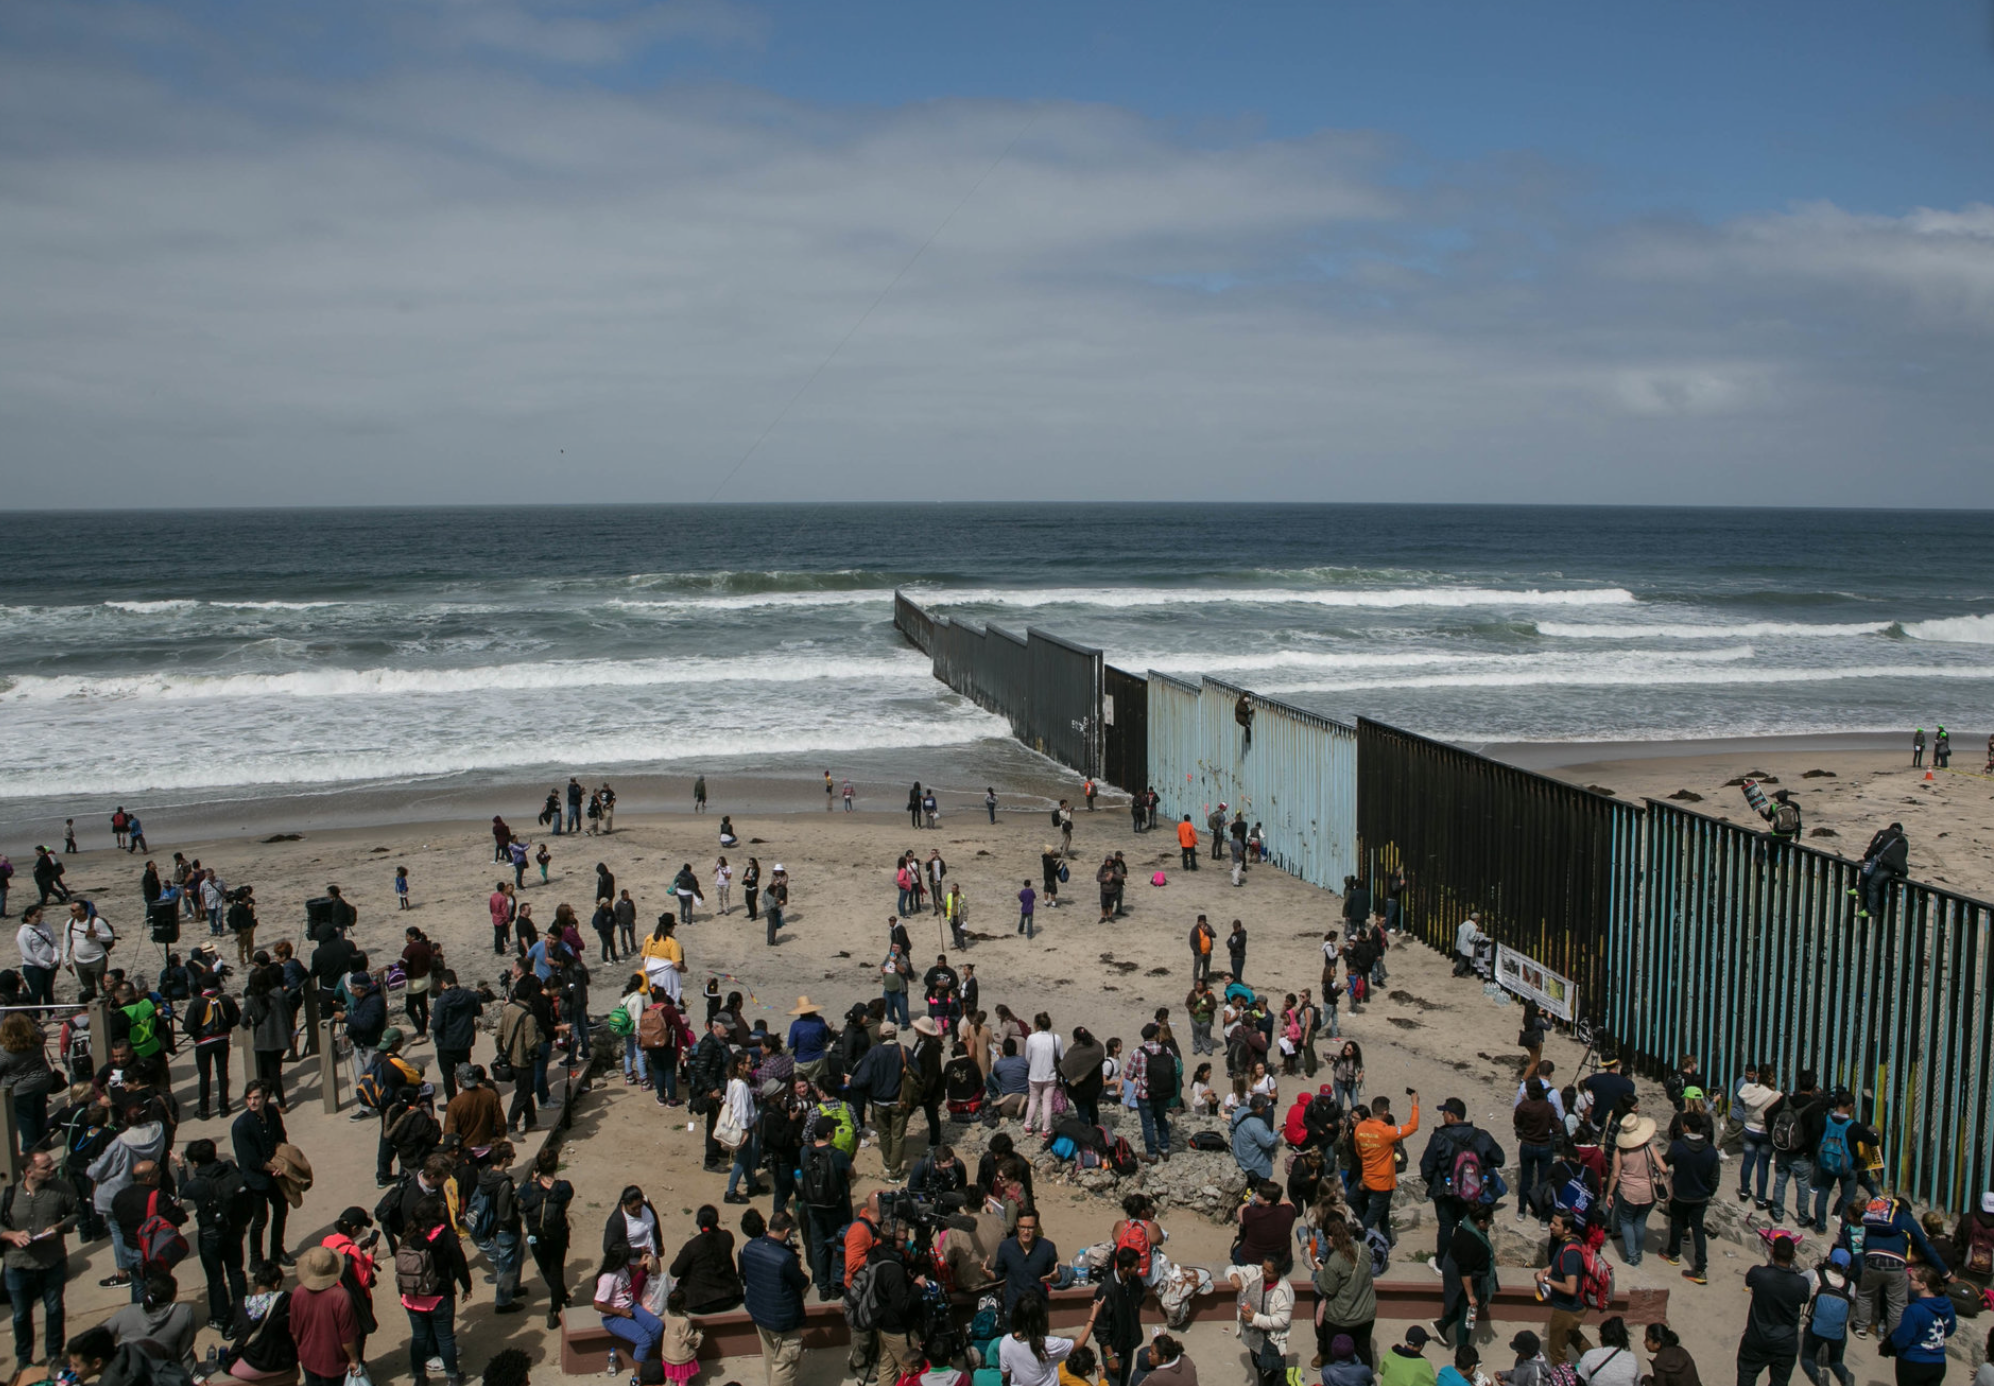 Migrants arrive at Tijuana